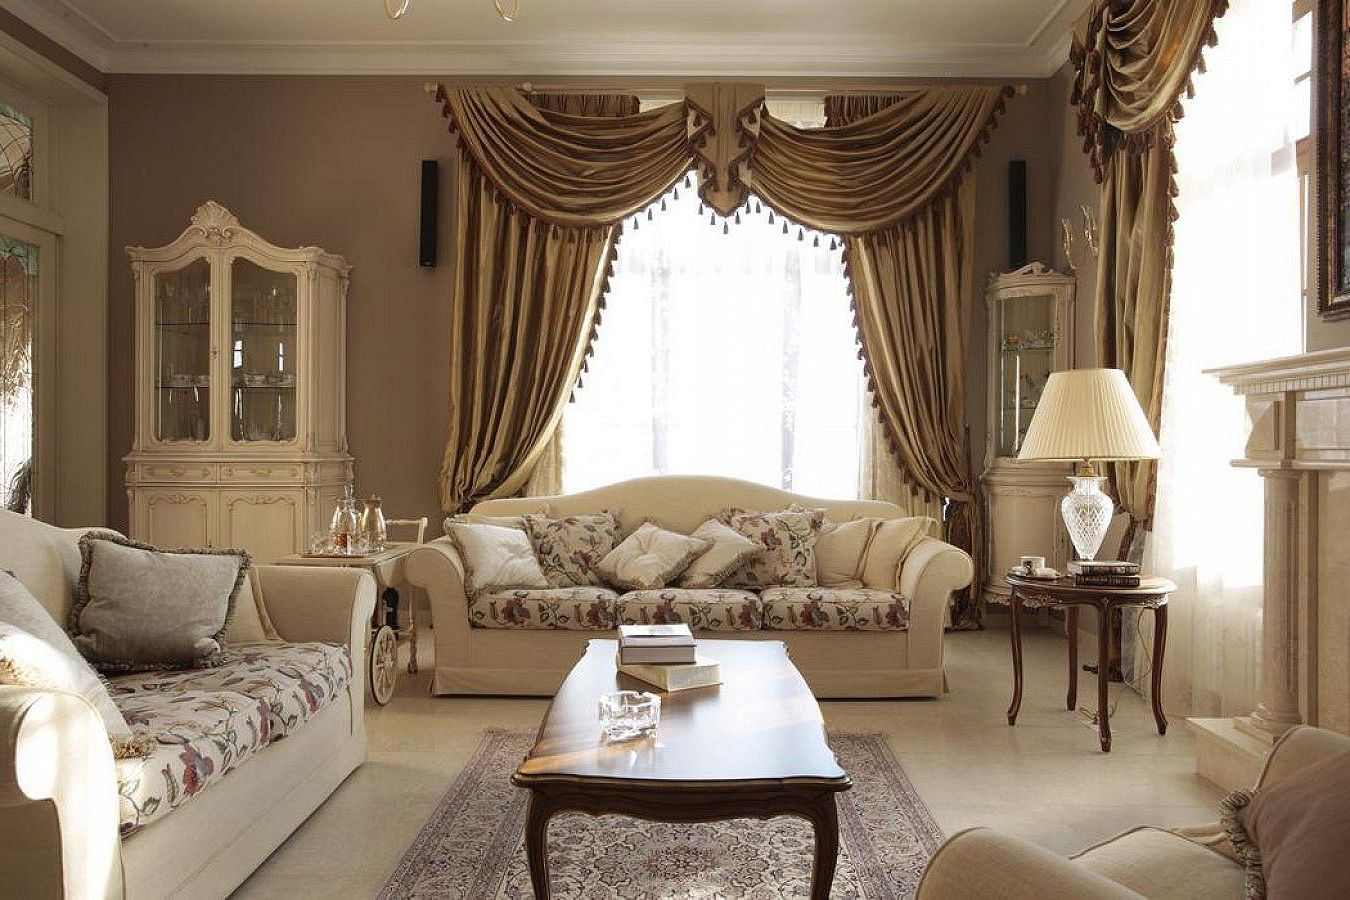 Classic style interior design ideas - Interior design styles for living room ...